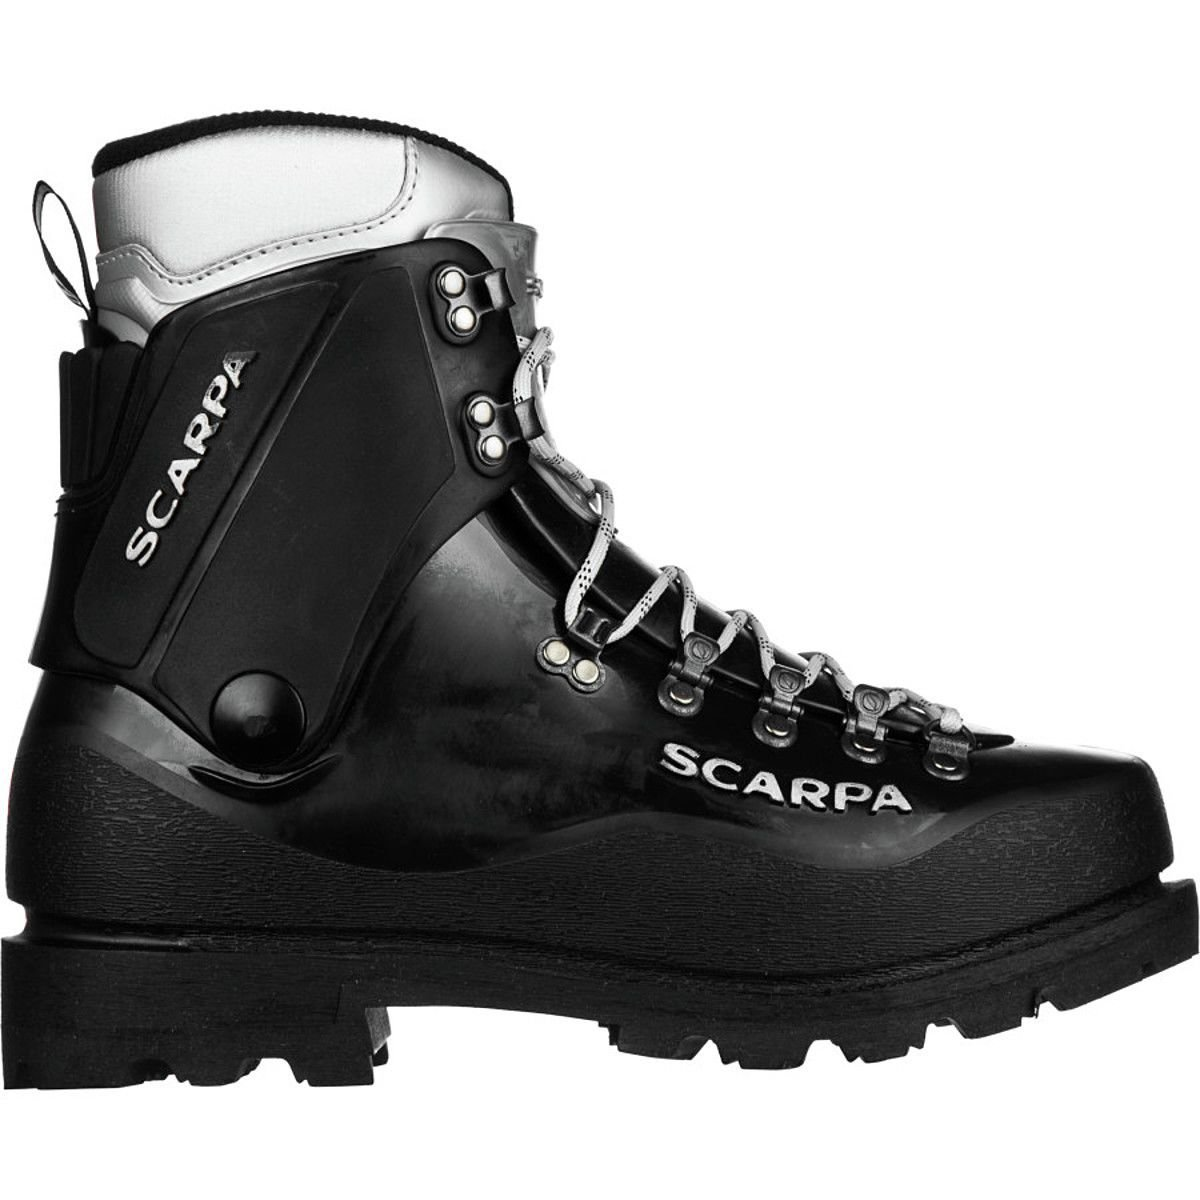 Scarpa Inverno Mountaineering Boot - Men's B001HZQIF8 12 D(M) US|Black